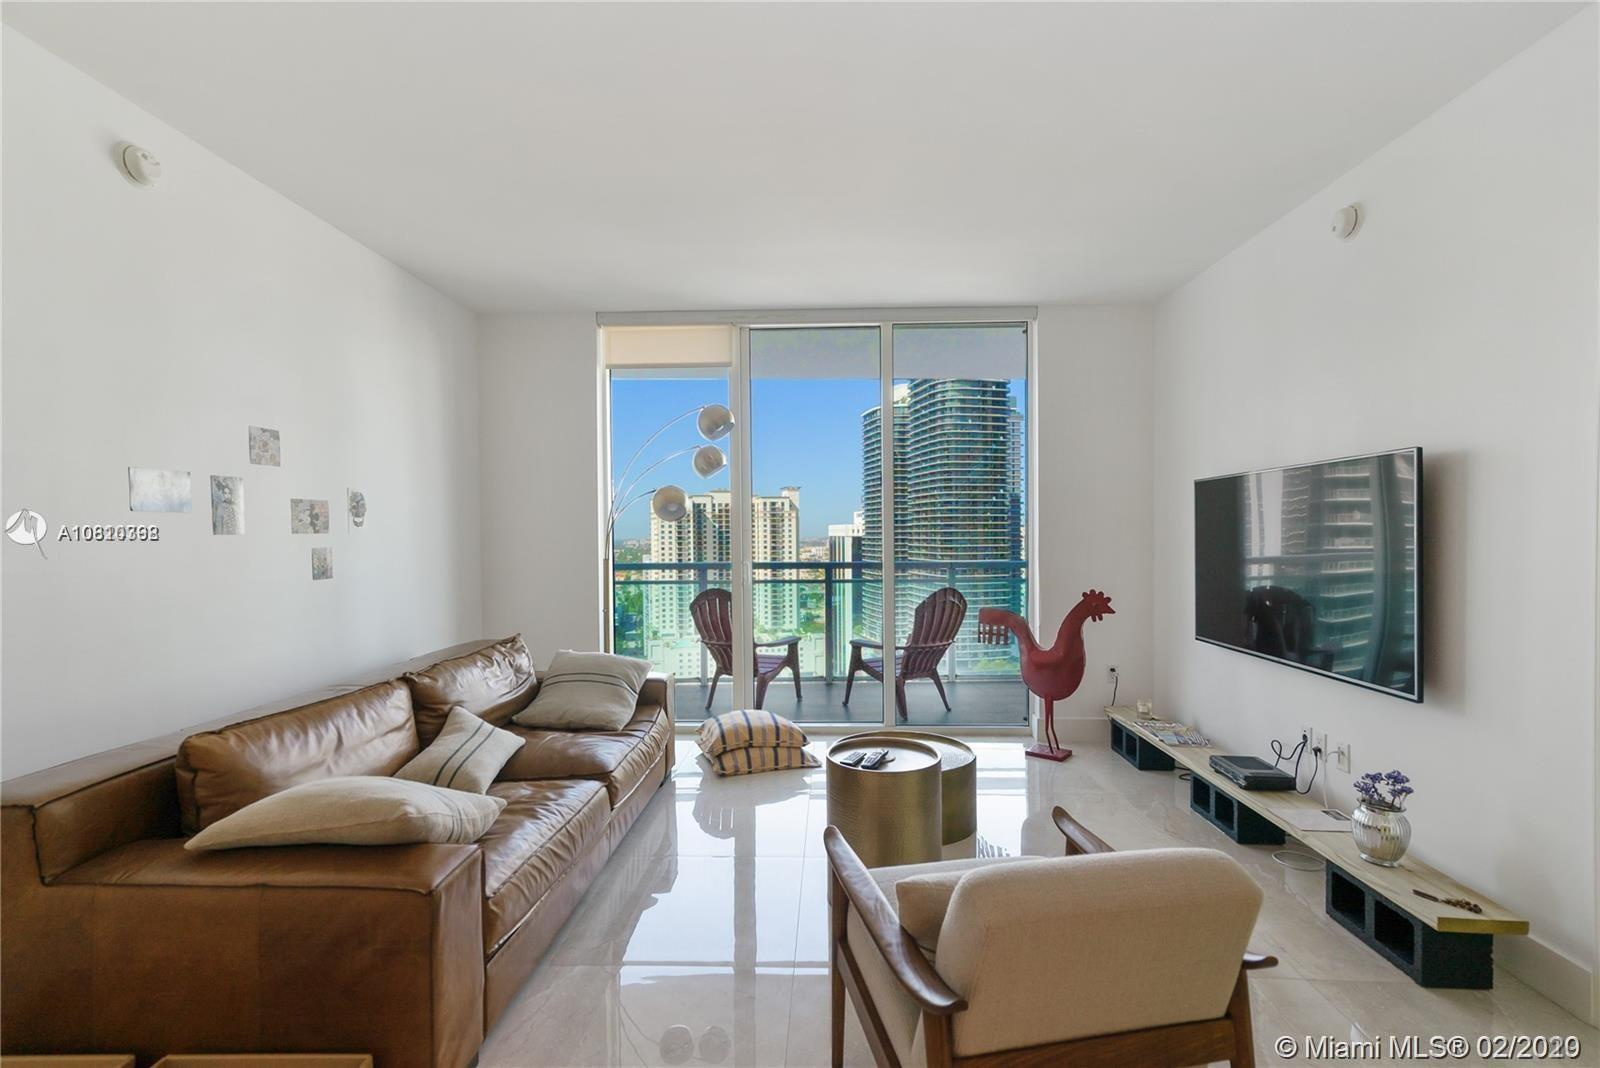 The Plaza on Brickell 2 #3007 - 951 Brickell Ave #3007, Miami, FL 33131